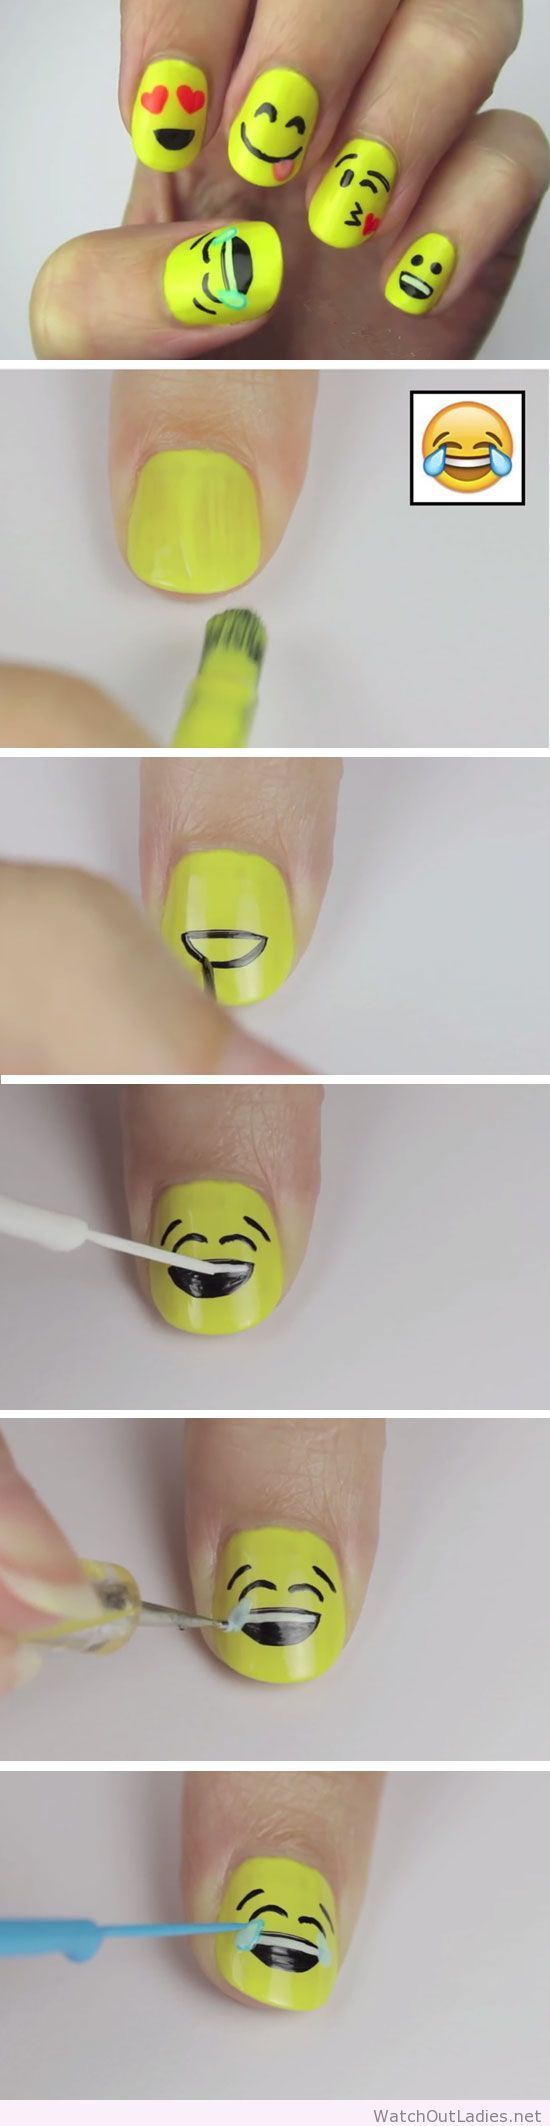 Very funny nail art idea